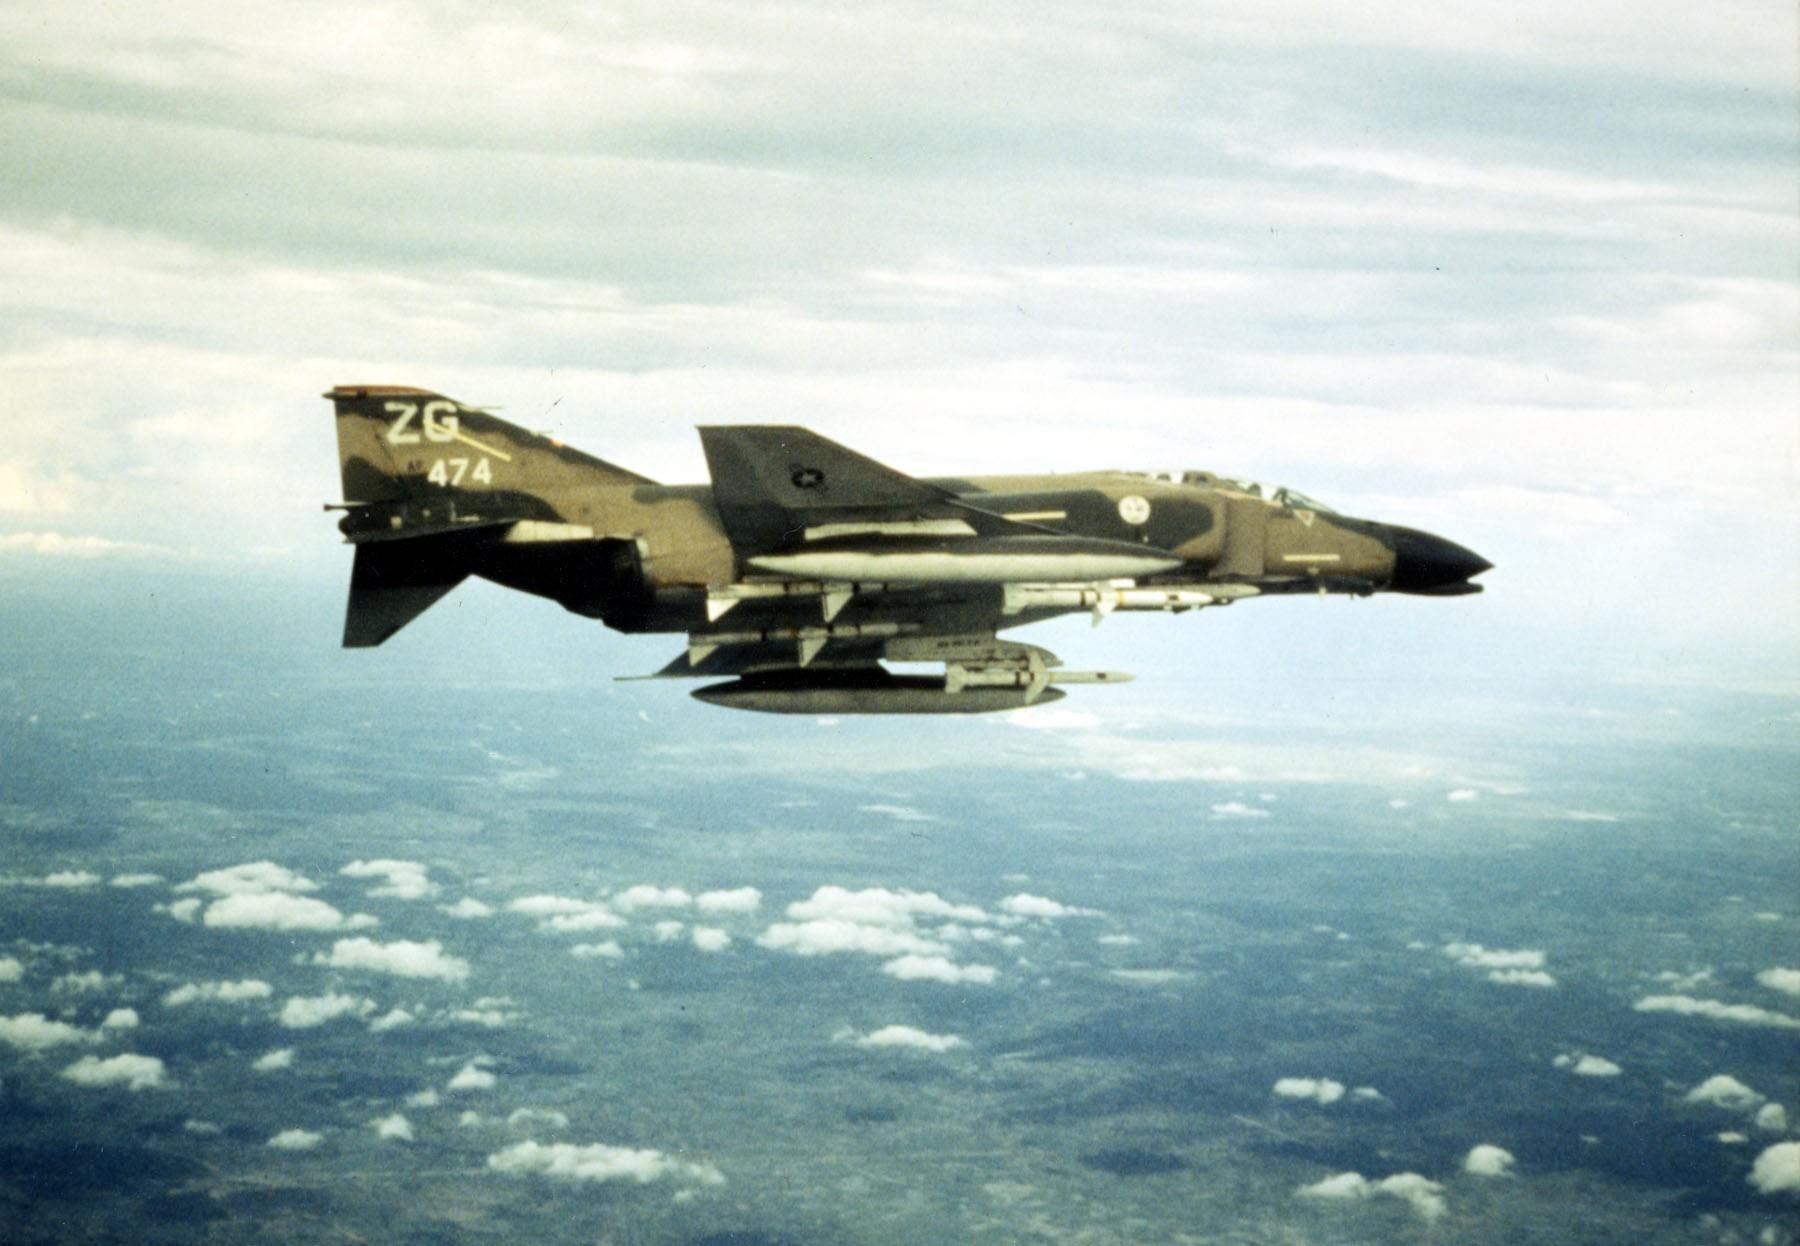 An F-4 Phantom loaded with fuel tanks and four Sparrow missiles patrols the skies above Vietnam.